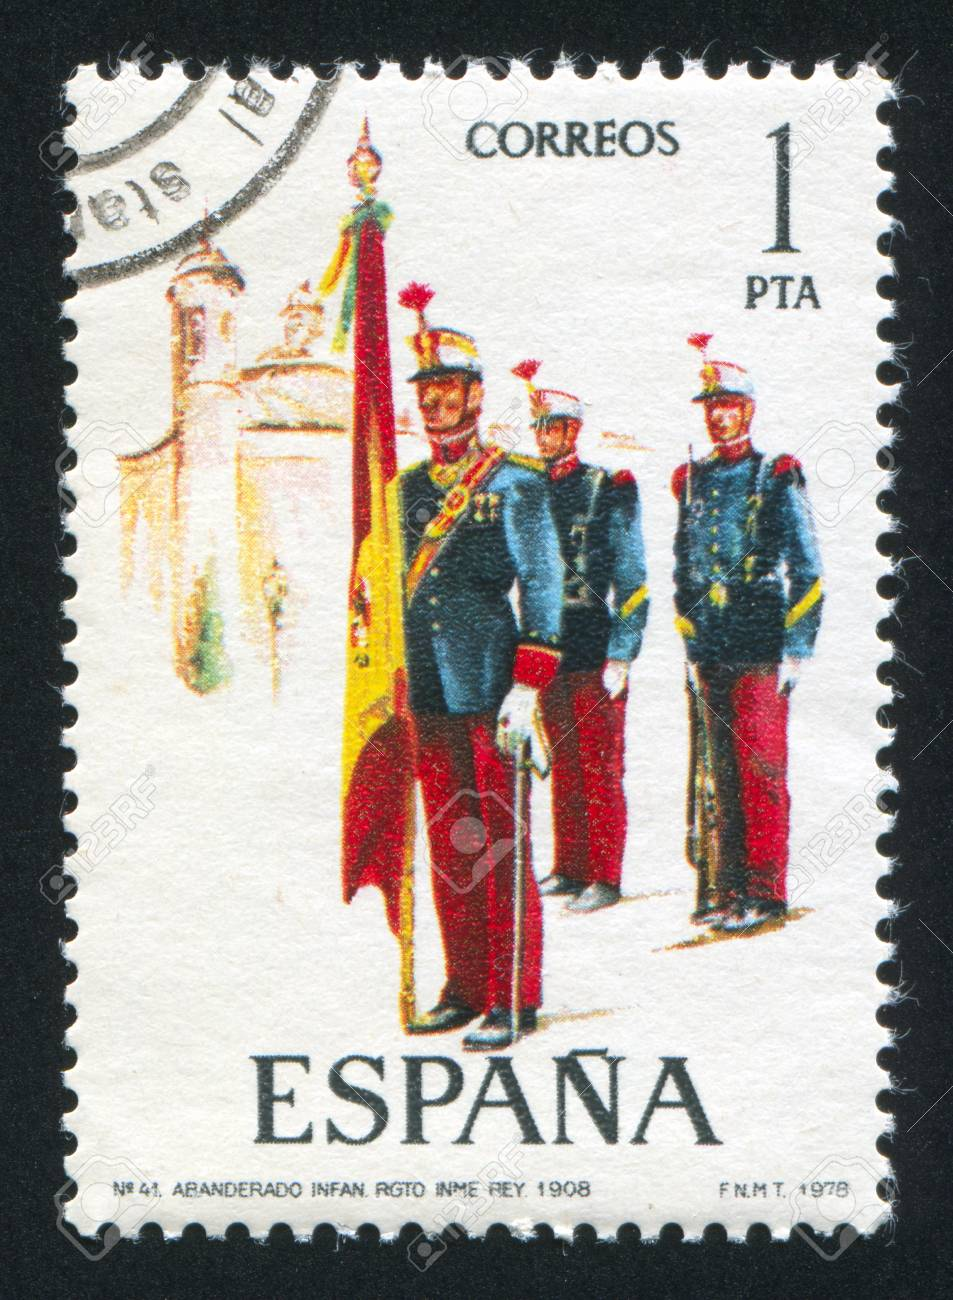 SPAIN - CIRCA 1978: stamp printed by Spain, shows soldier, Flag bearer, 1908, circa 1978. Stock Photo - 15508899